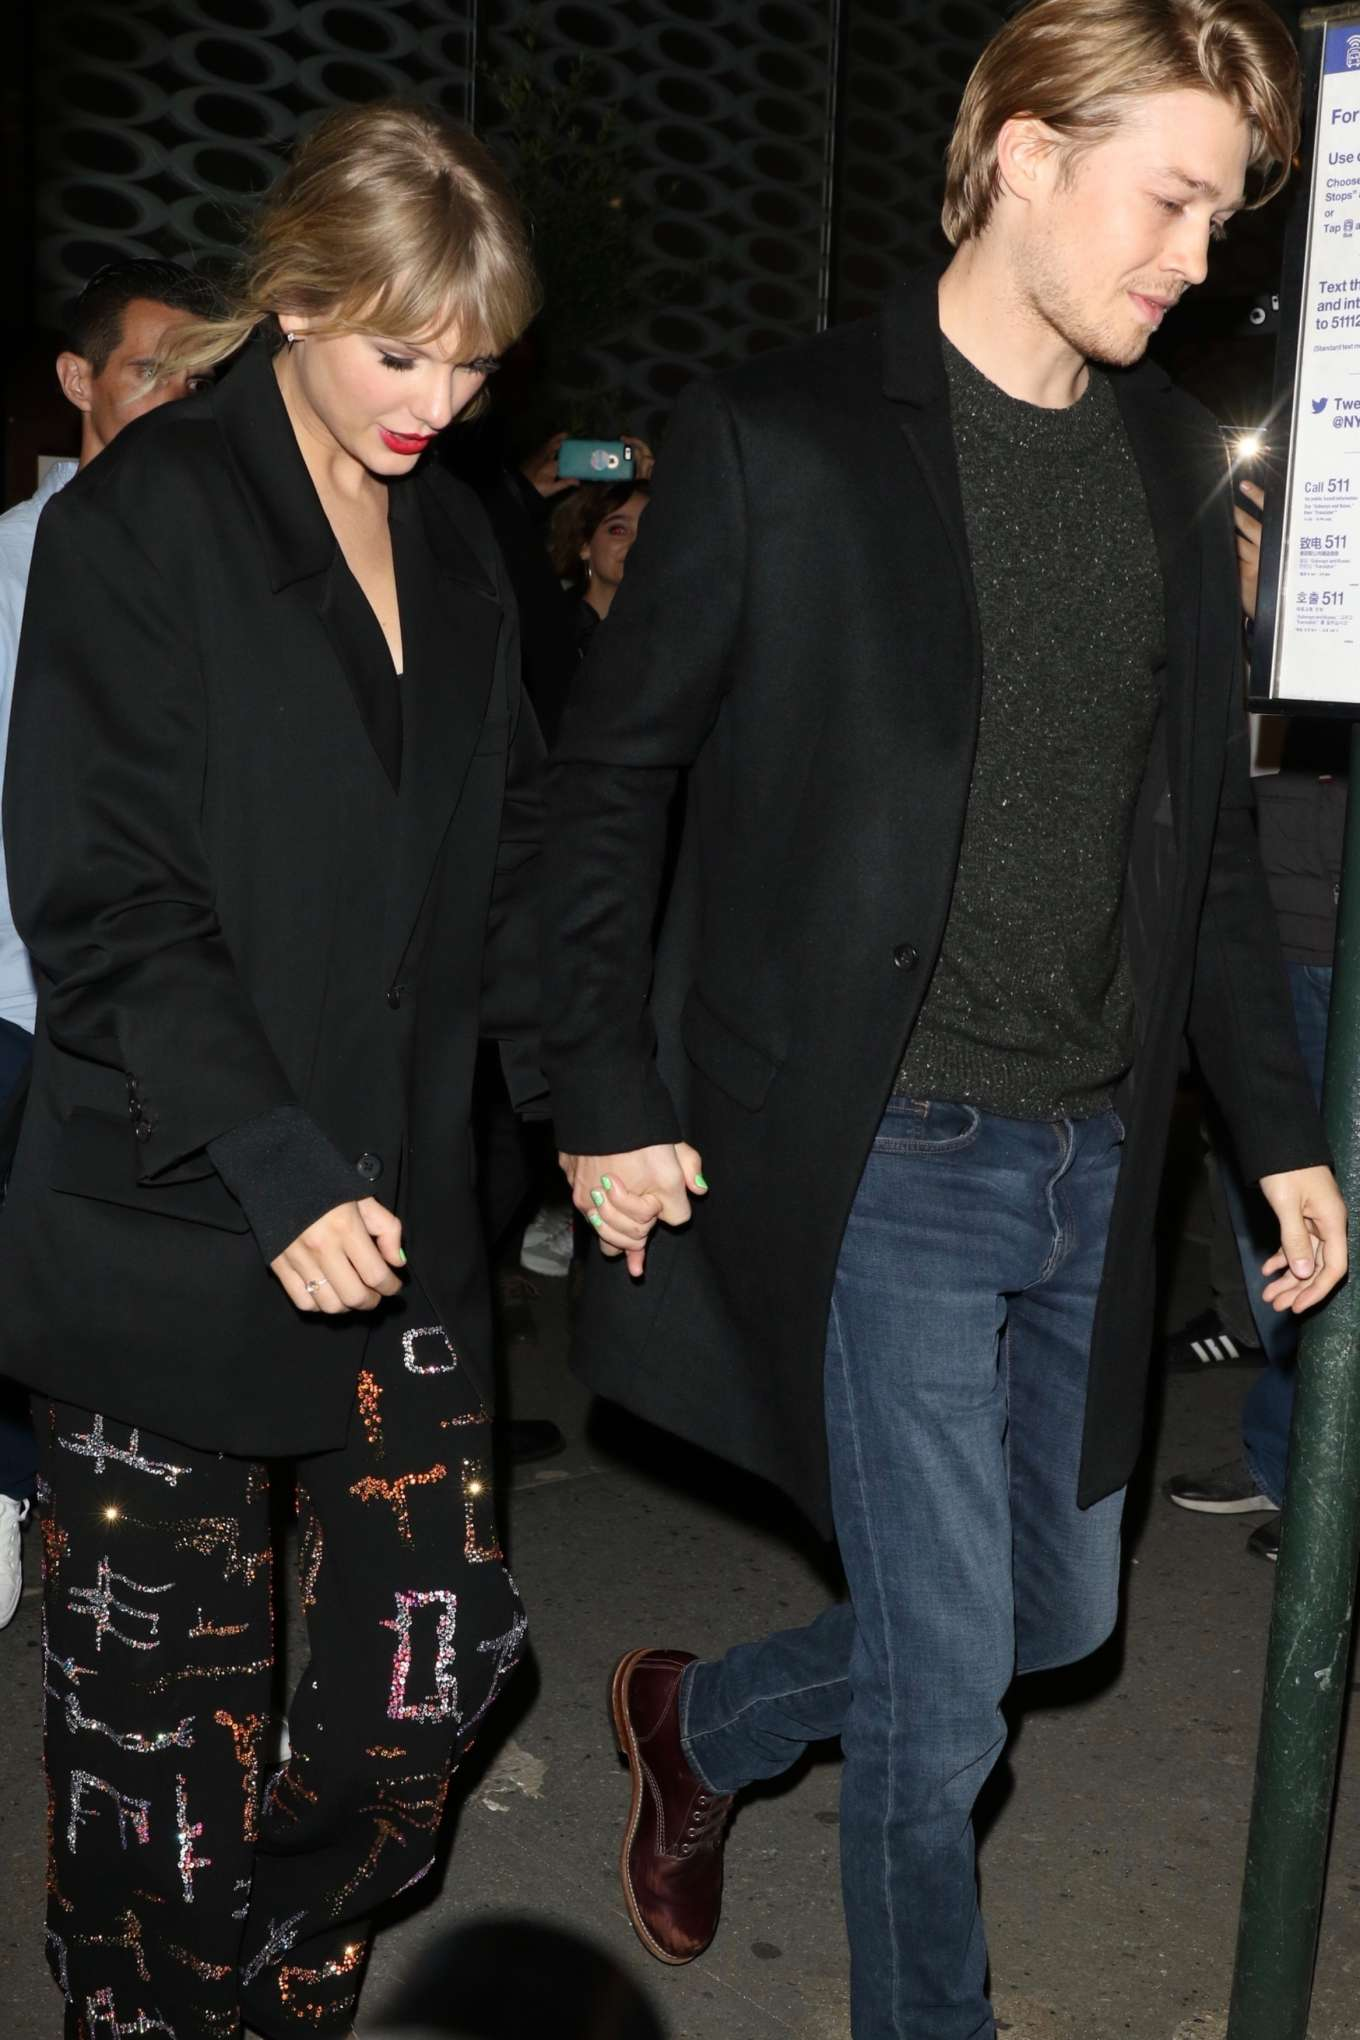 Taylor Swift - Leaving the SNF after-party with her boyfriend in New York City